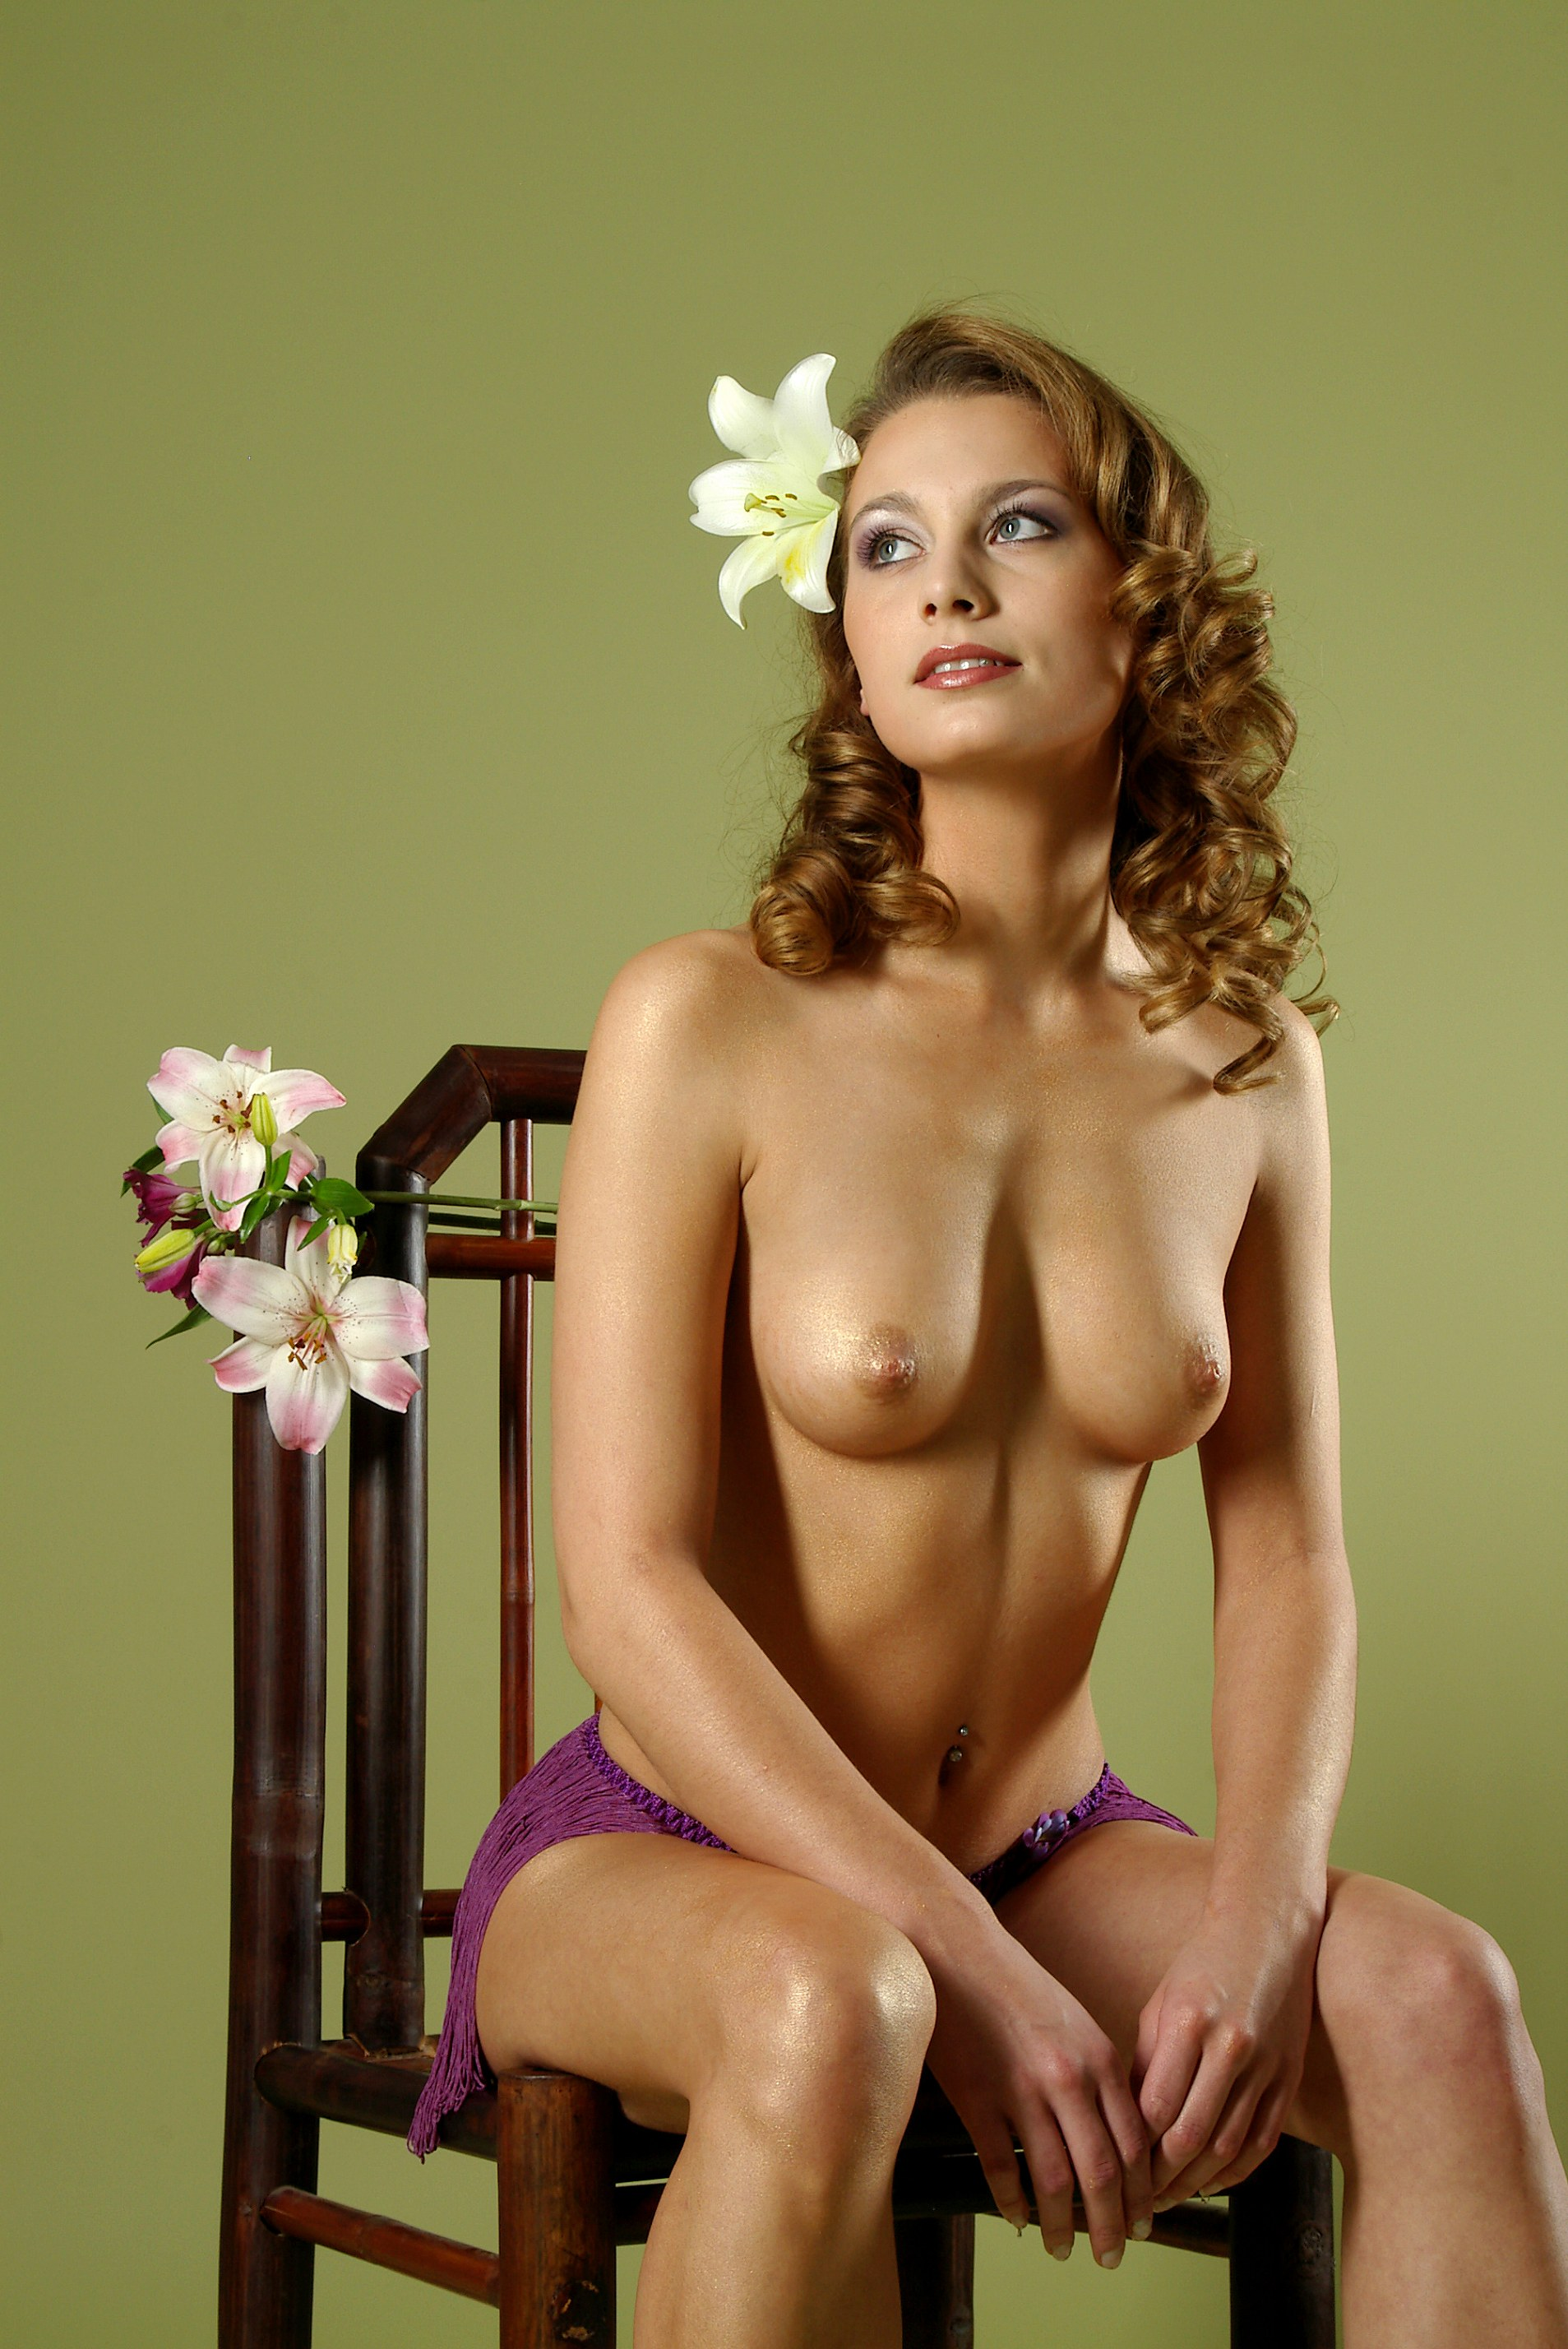 cute coed christin posing topless in a chair sweet t and a